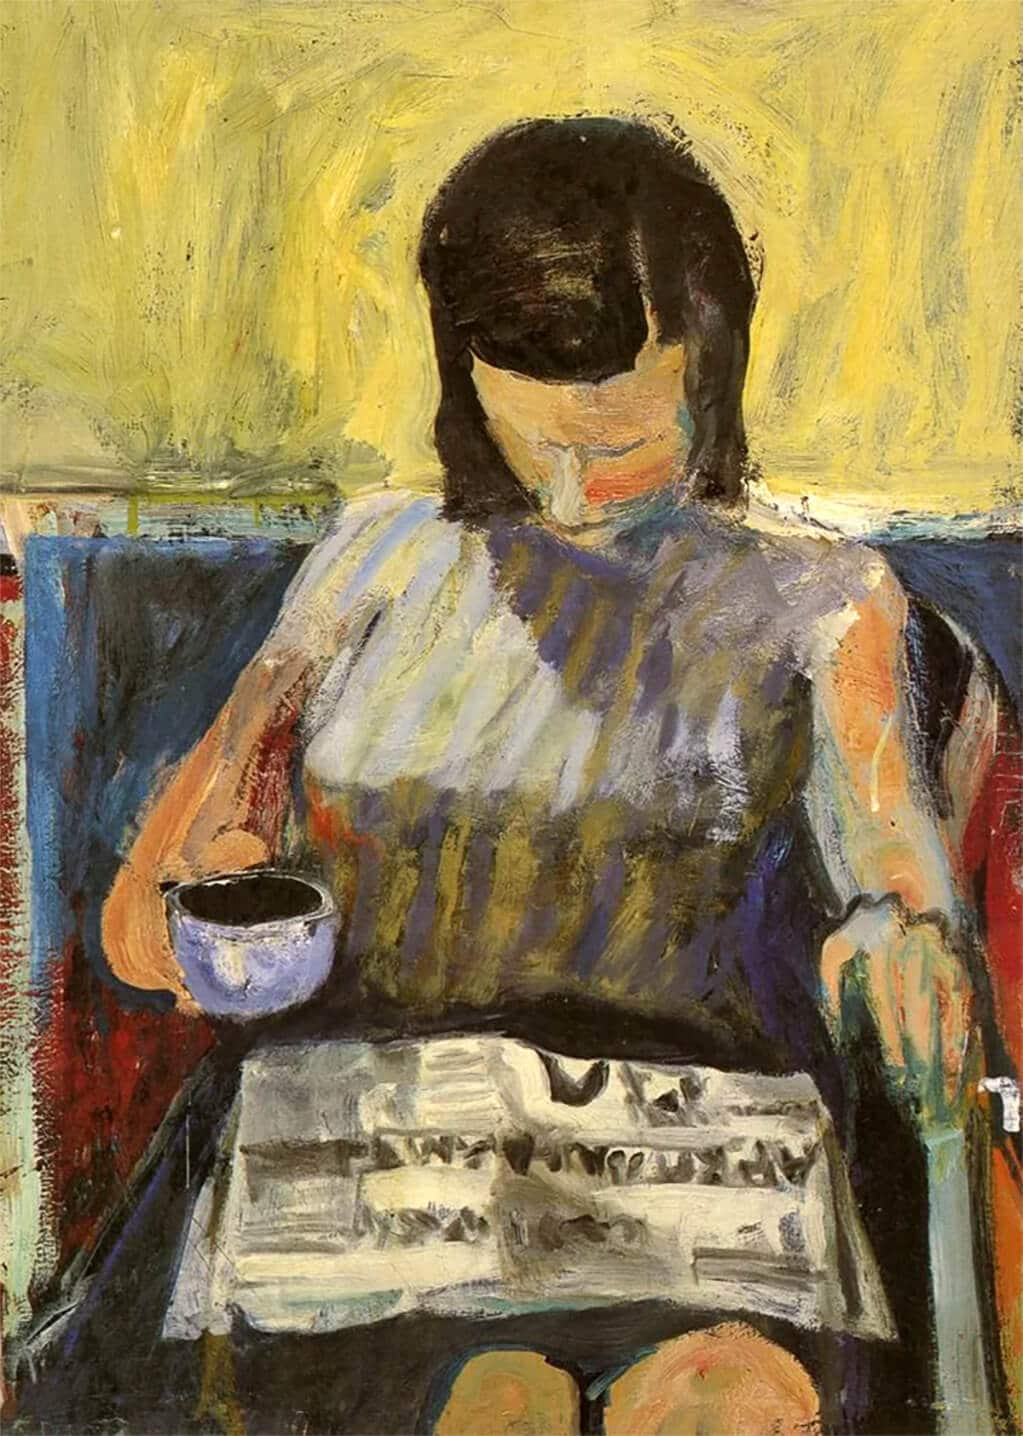 Richard Diebenkorn, Woman Reading a Newspaper, 1955-59; private collection